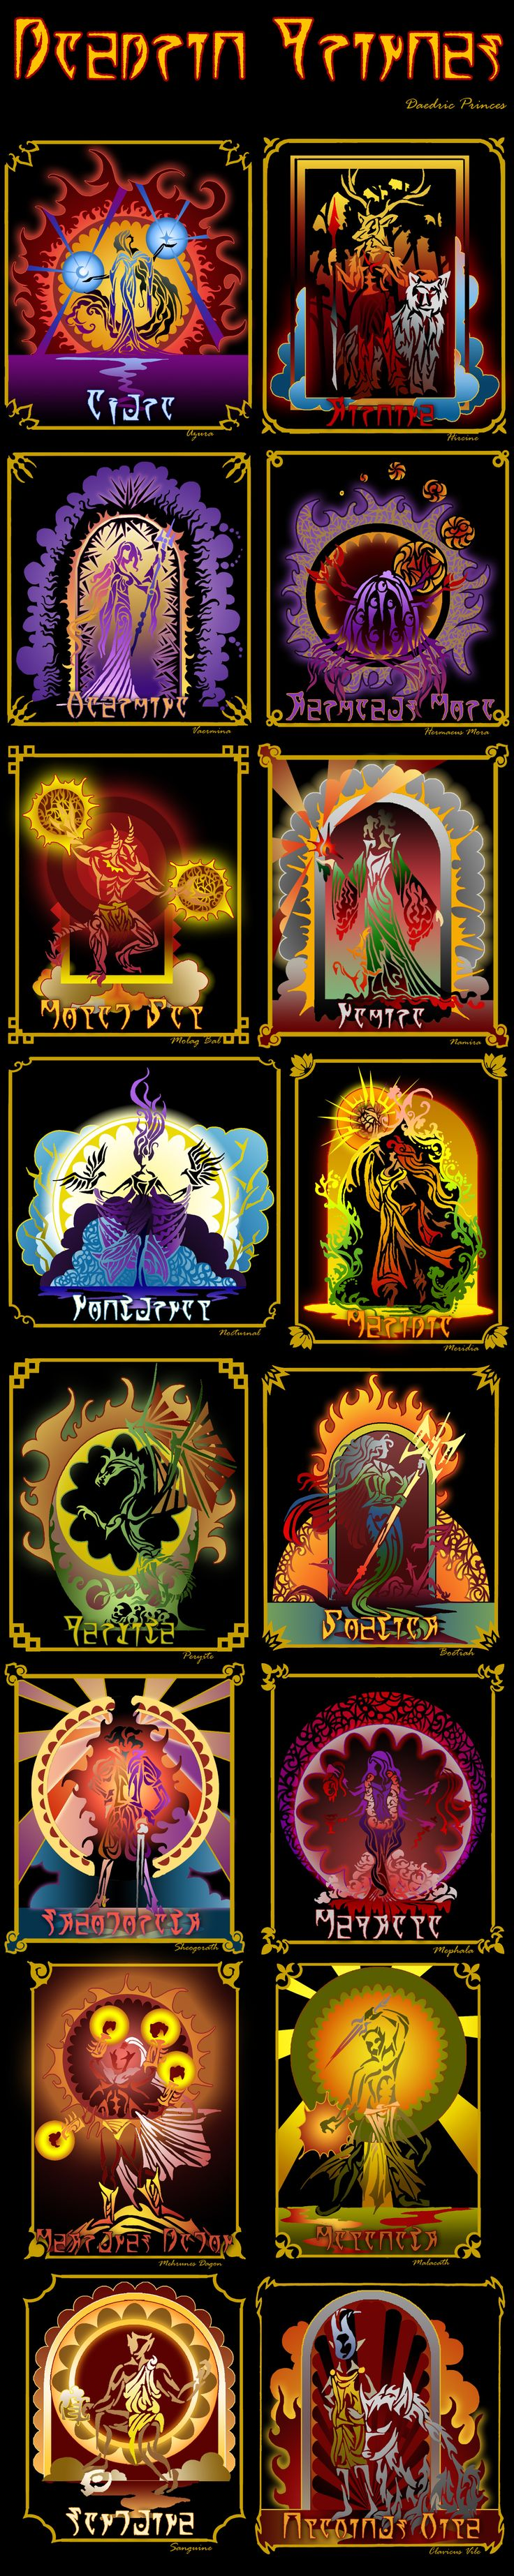 TES: Daedric Princes by vopoha on DeviantArt I really like these images. They would make great stained glass windows.